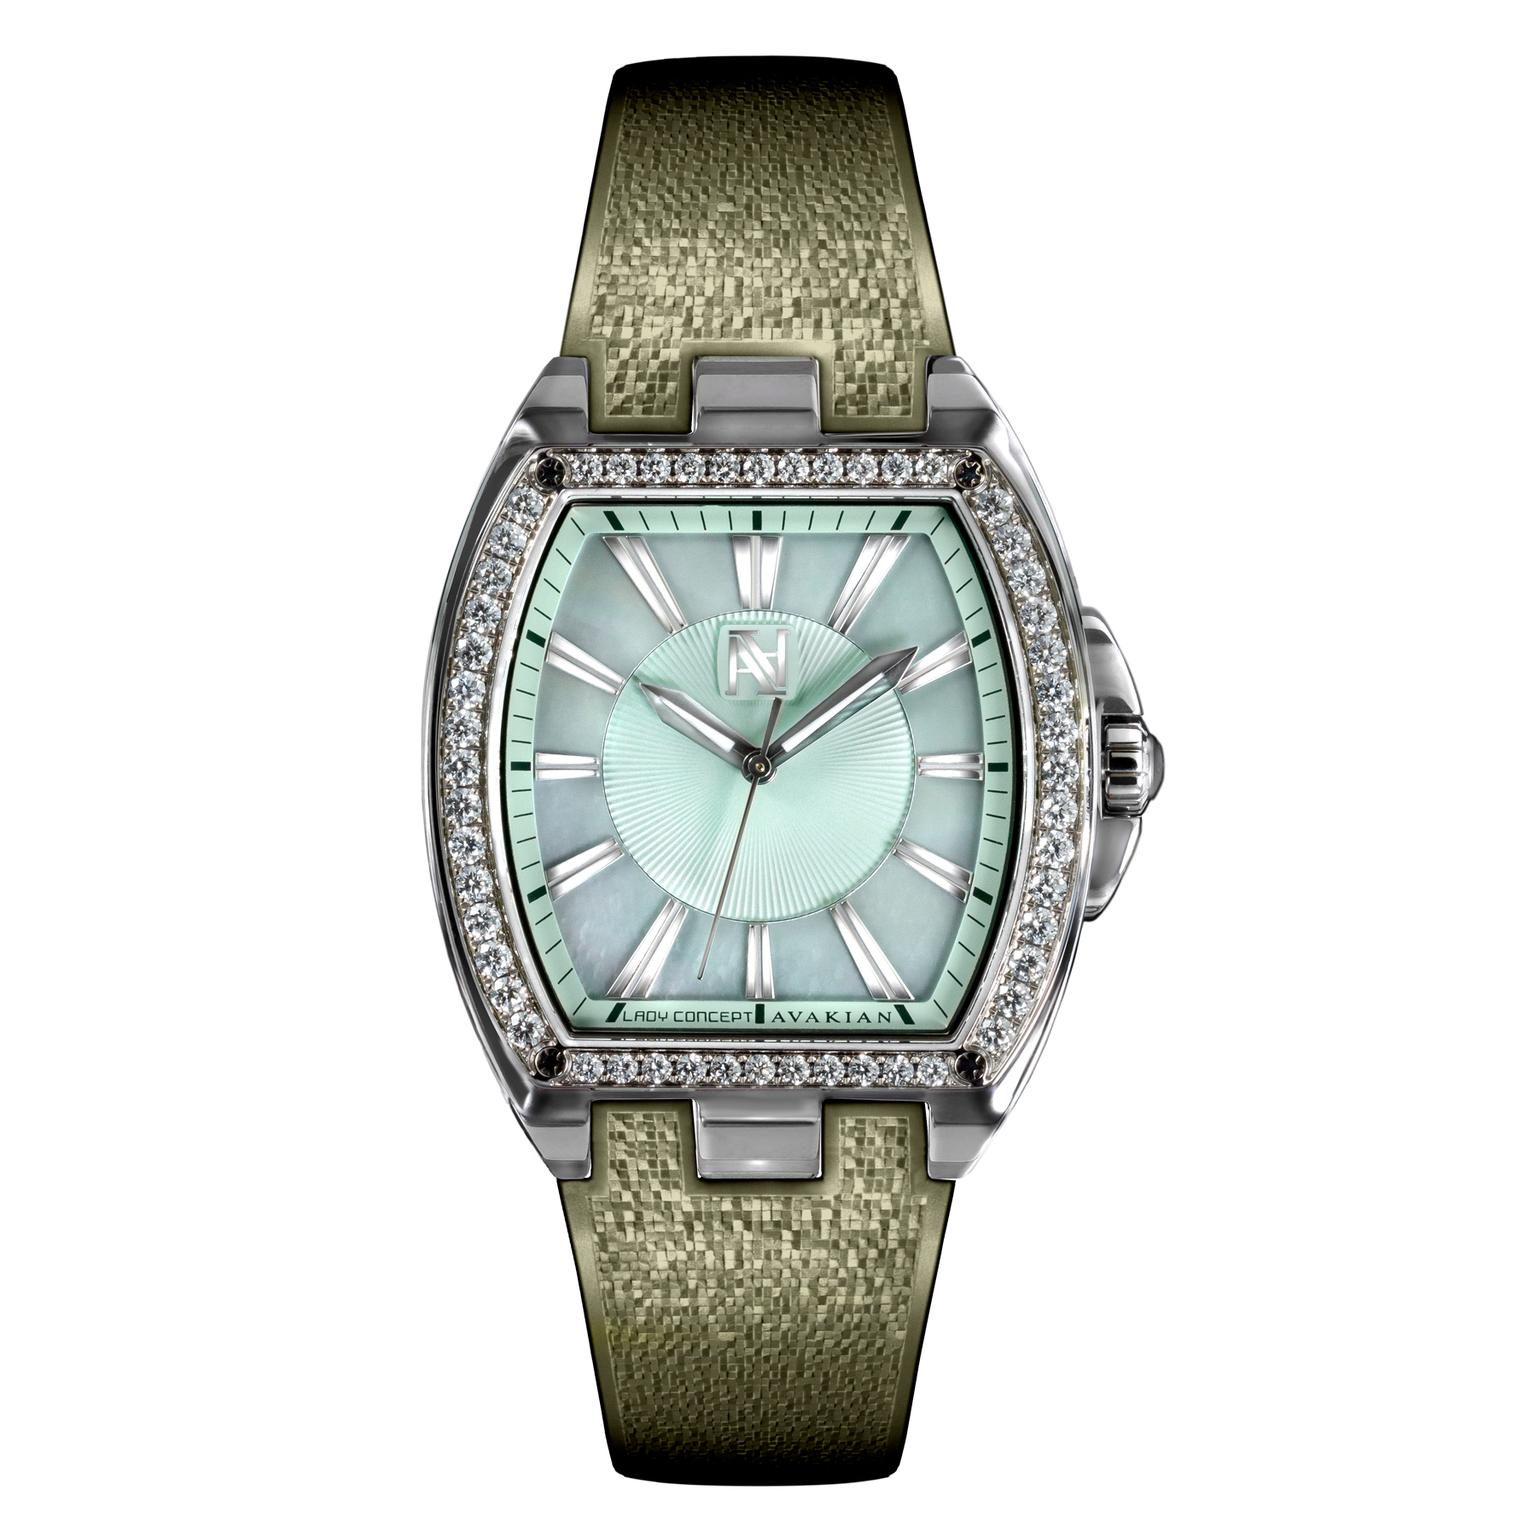 Avakian Lady Concept Khaki watch